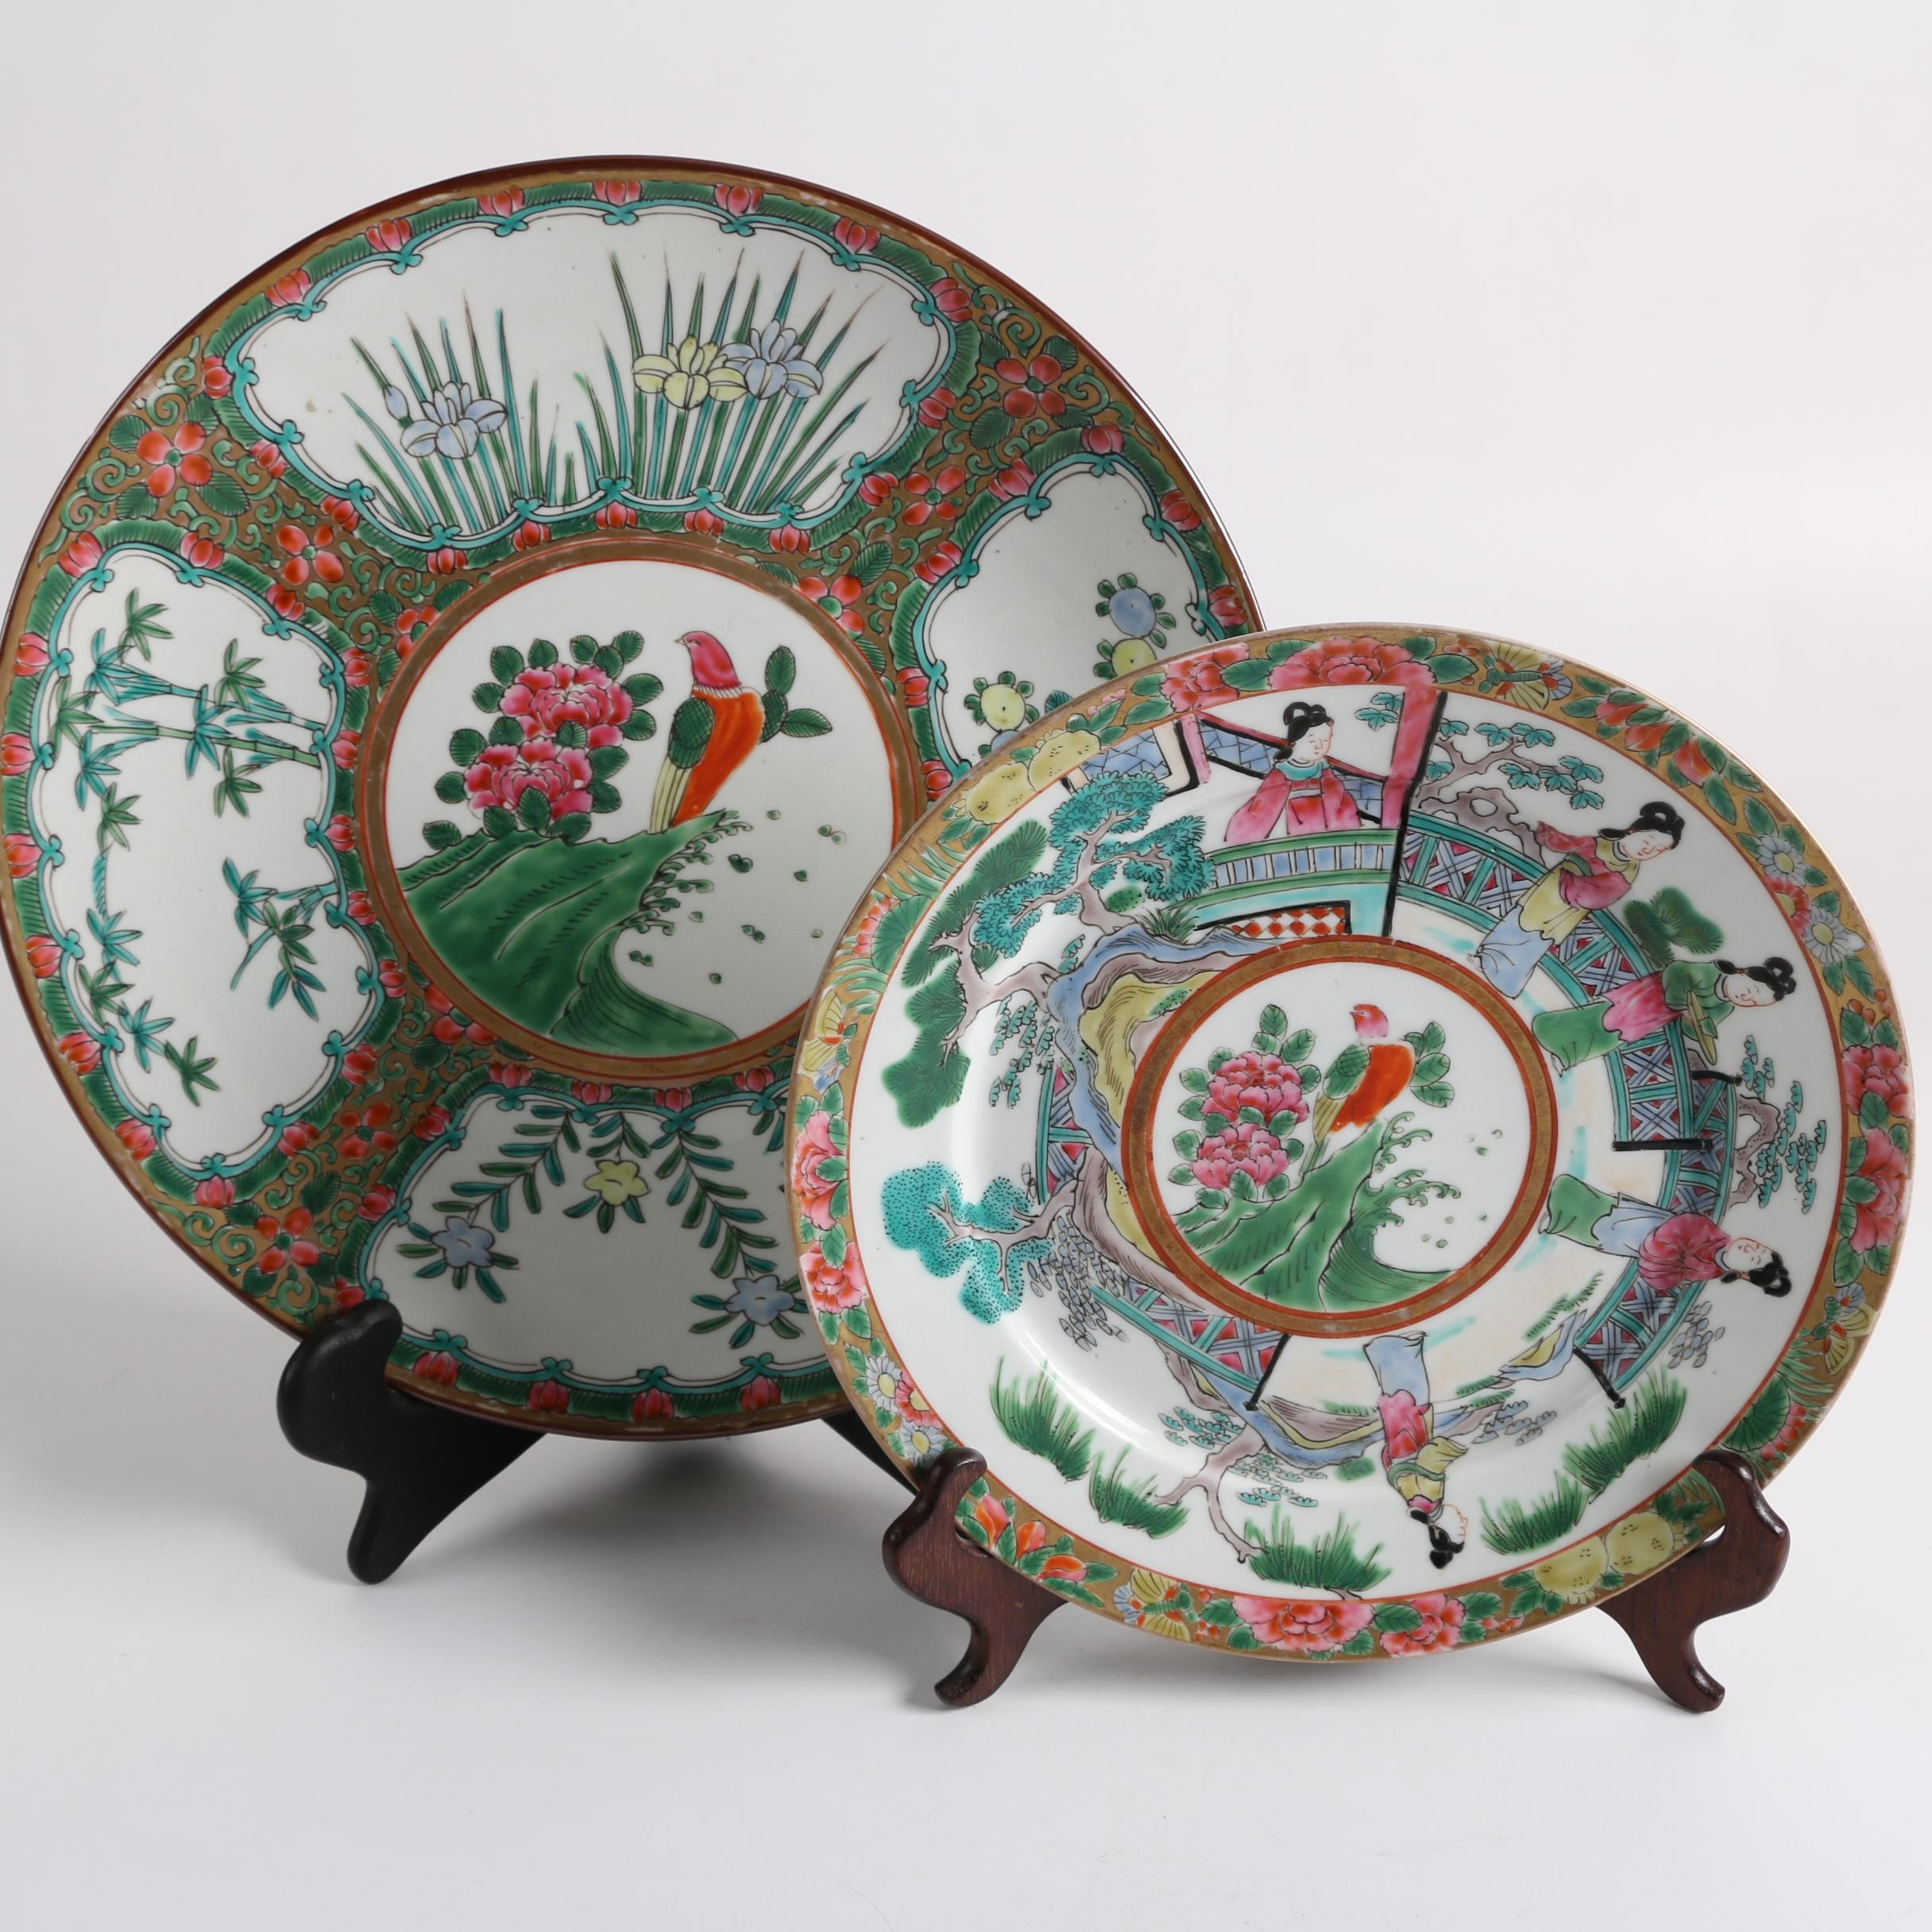 Rose Canton Style Porcelain Plates with Stands